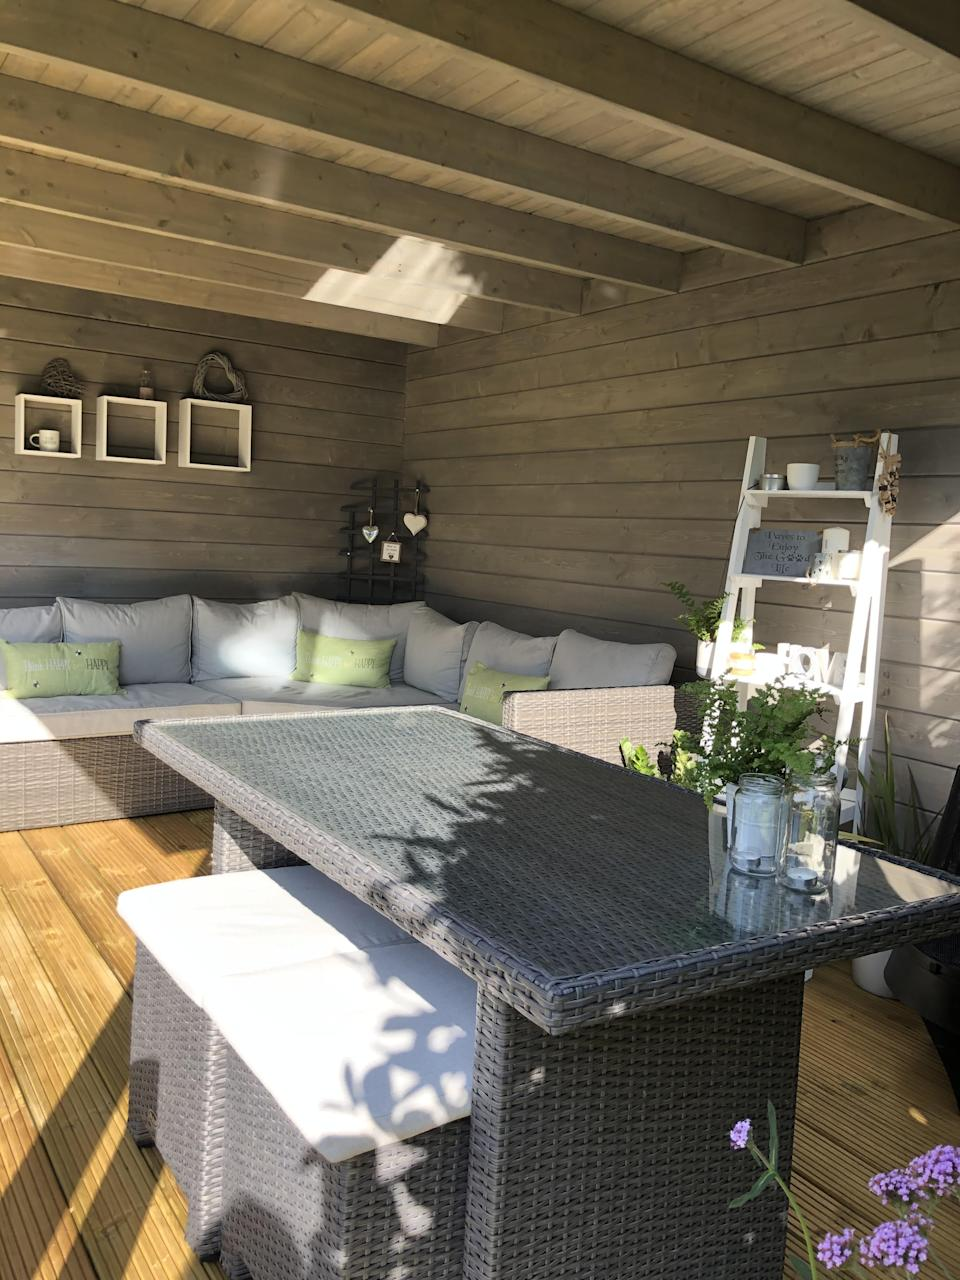 The space is a lovely place to shade from the sun. (Supplied latestdeals.co.uk)